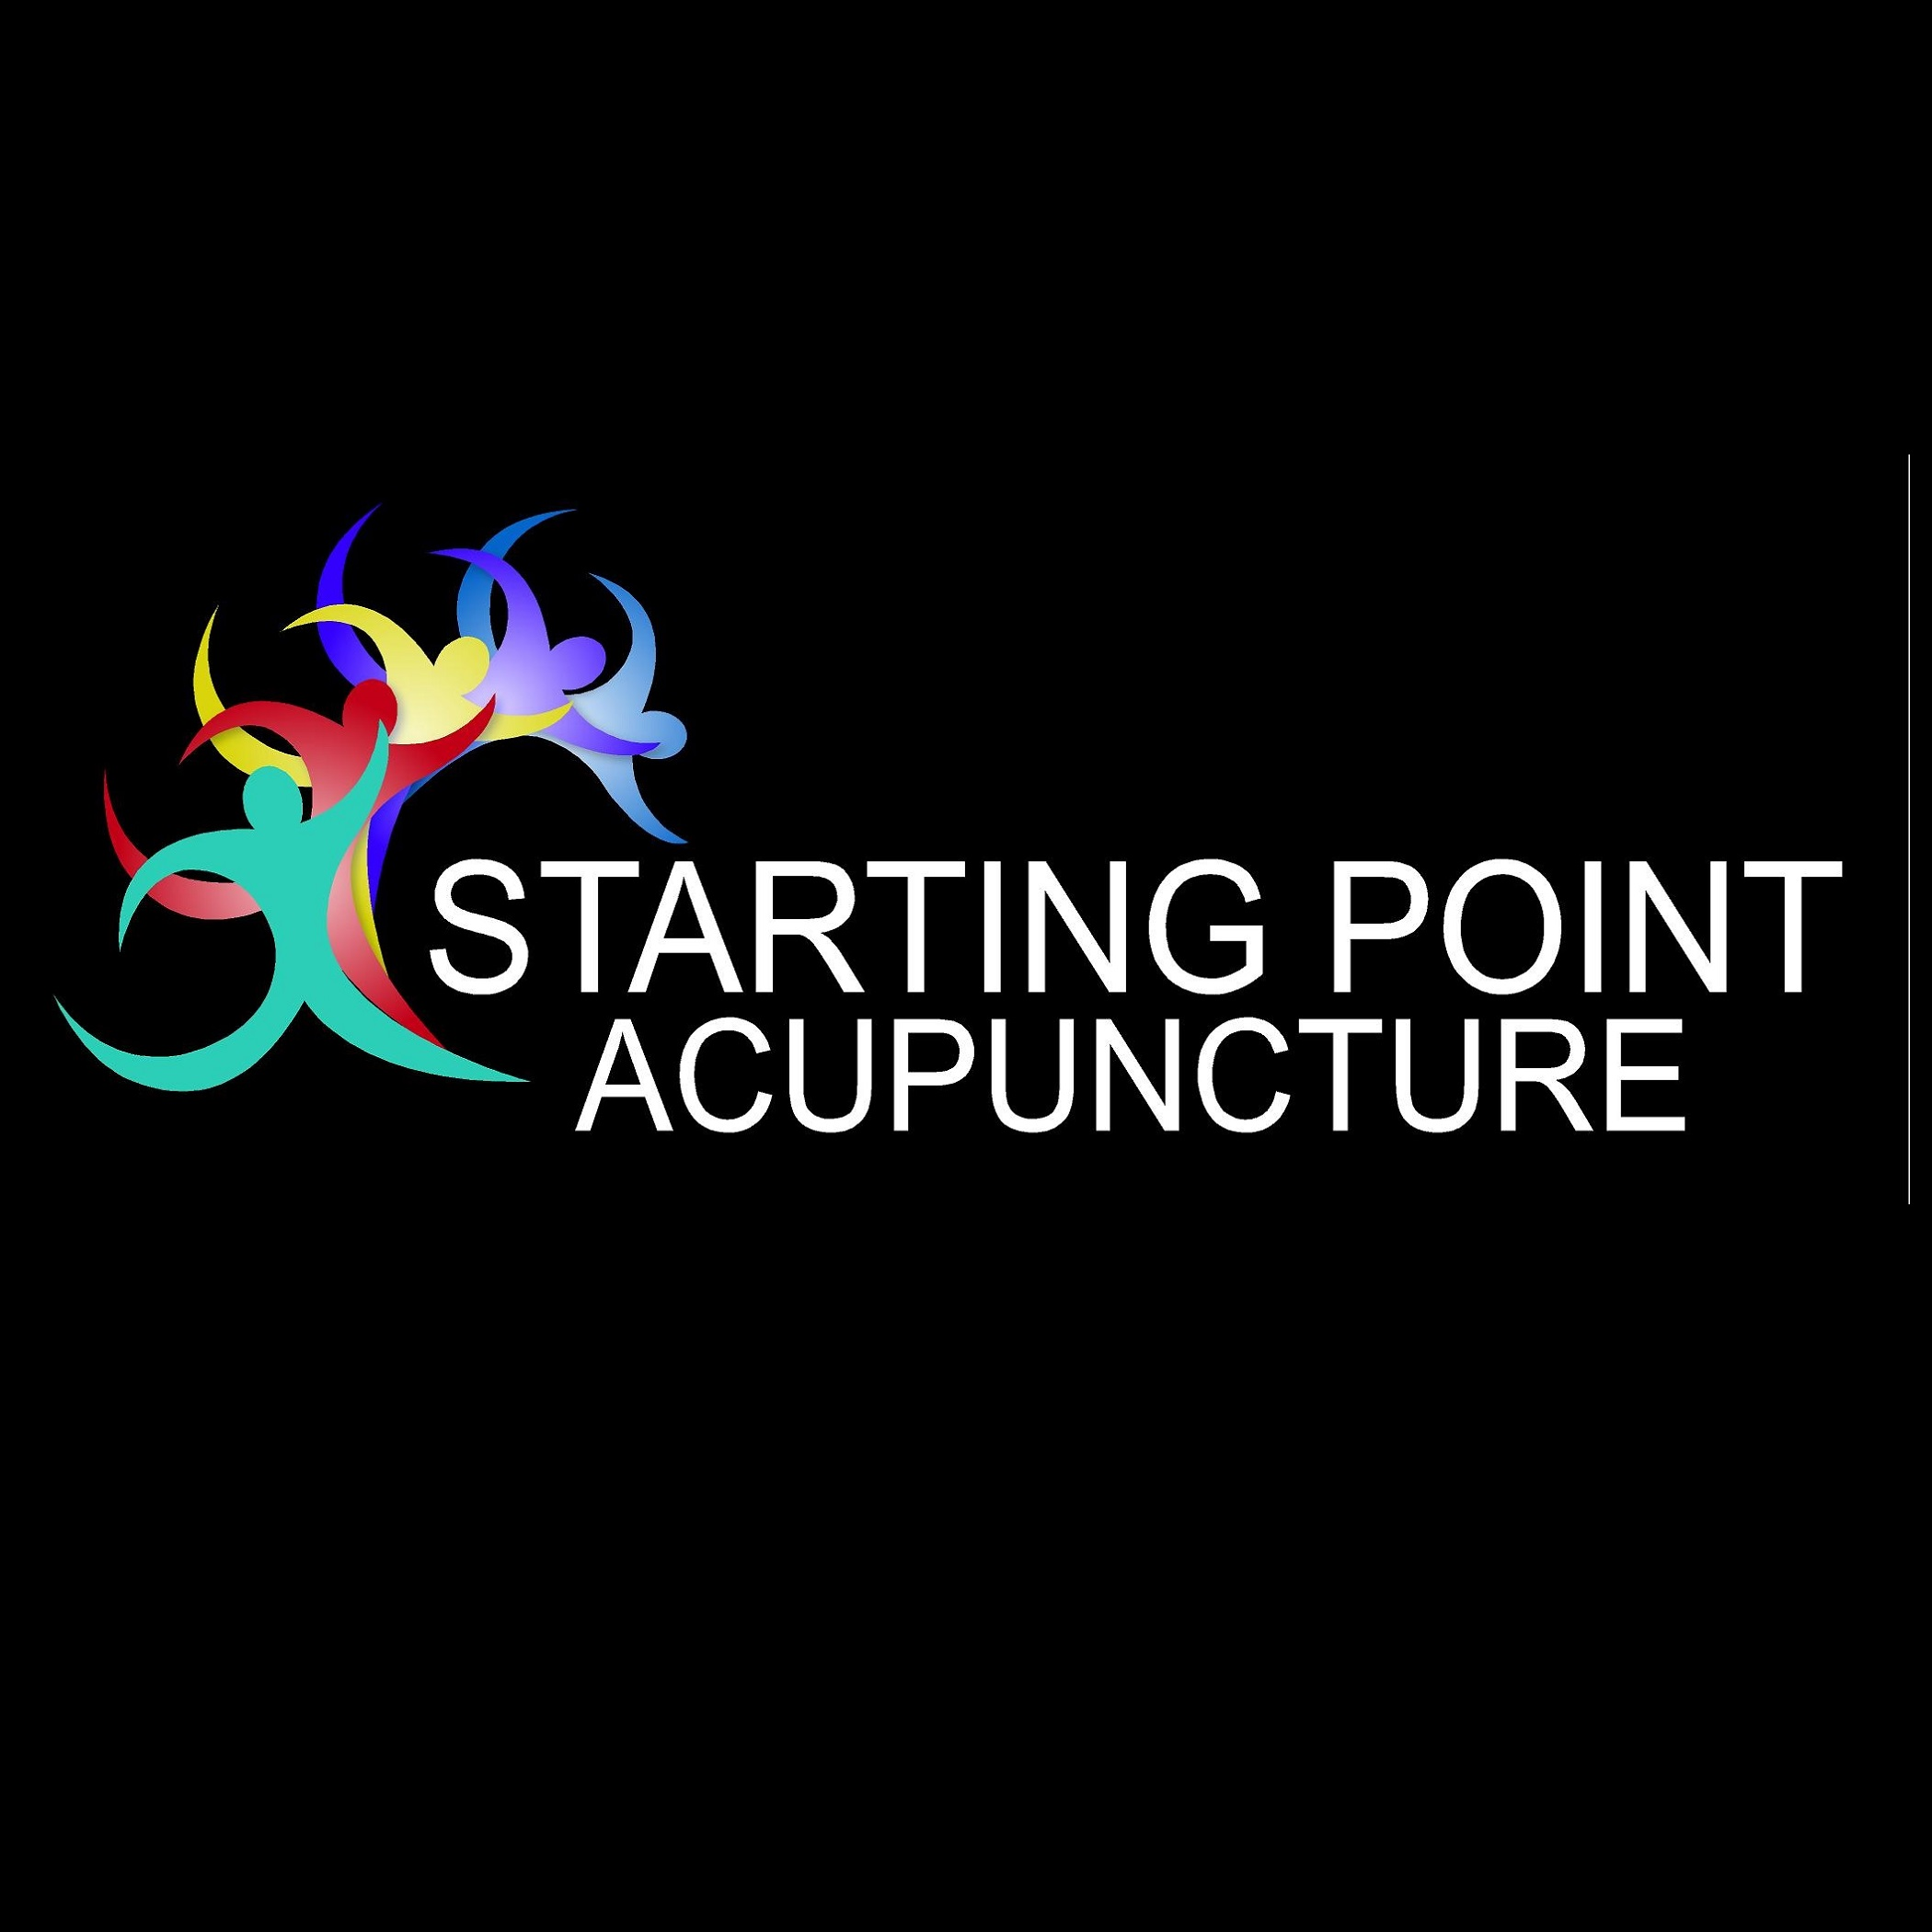 Starting Point Acupuncture & Health Services